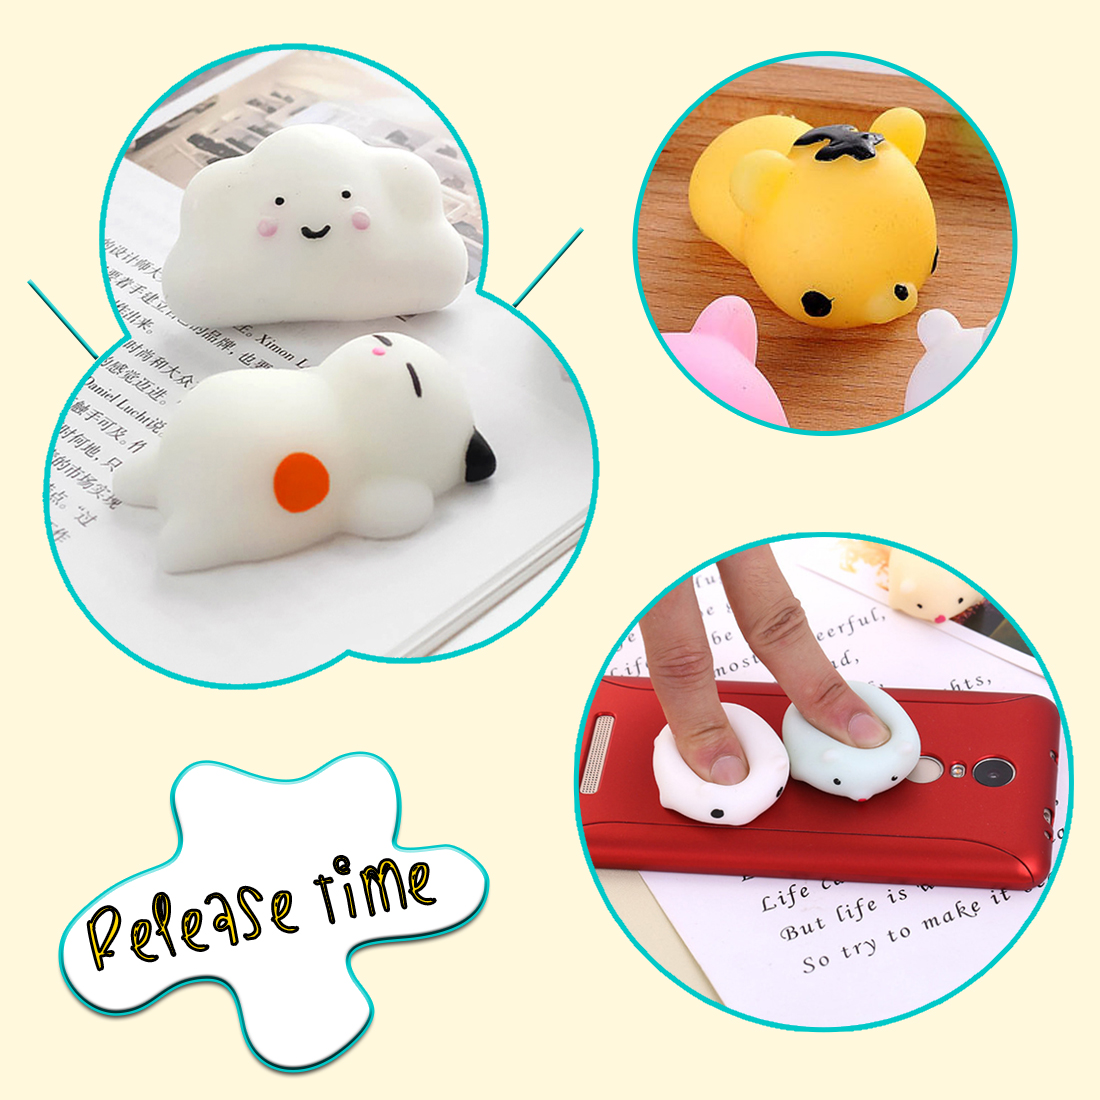 Mobile Phone Accessories Etmakit Mini Squishy Seal Cute Phone Straps Slow Rising Soft Press Squeeze Kawaii Bread Cake Kids Toy Phone Diy Accessories Mobile Phone Straps